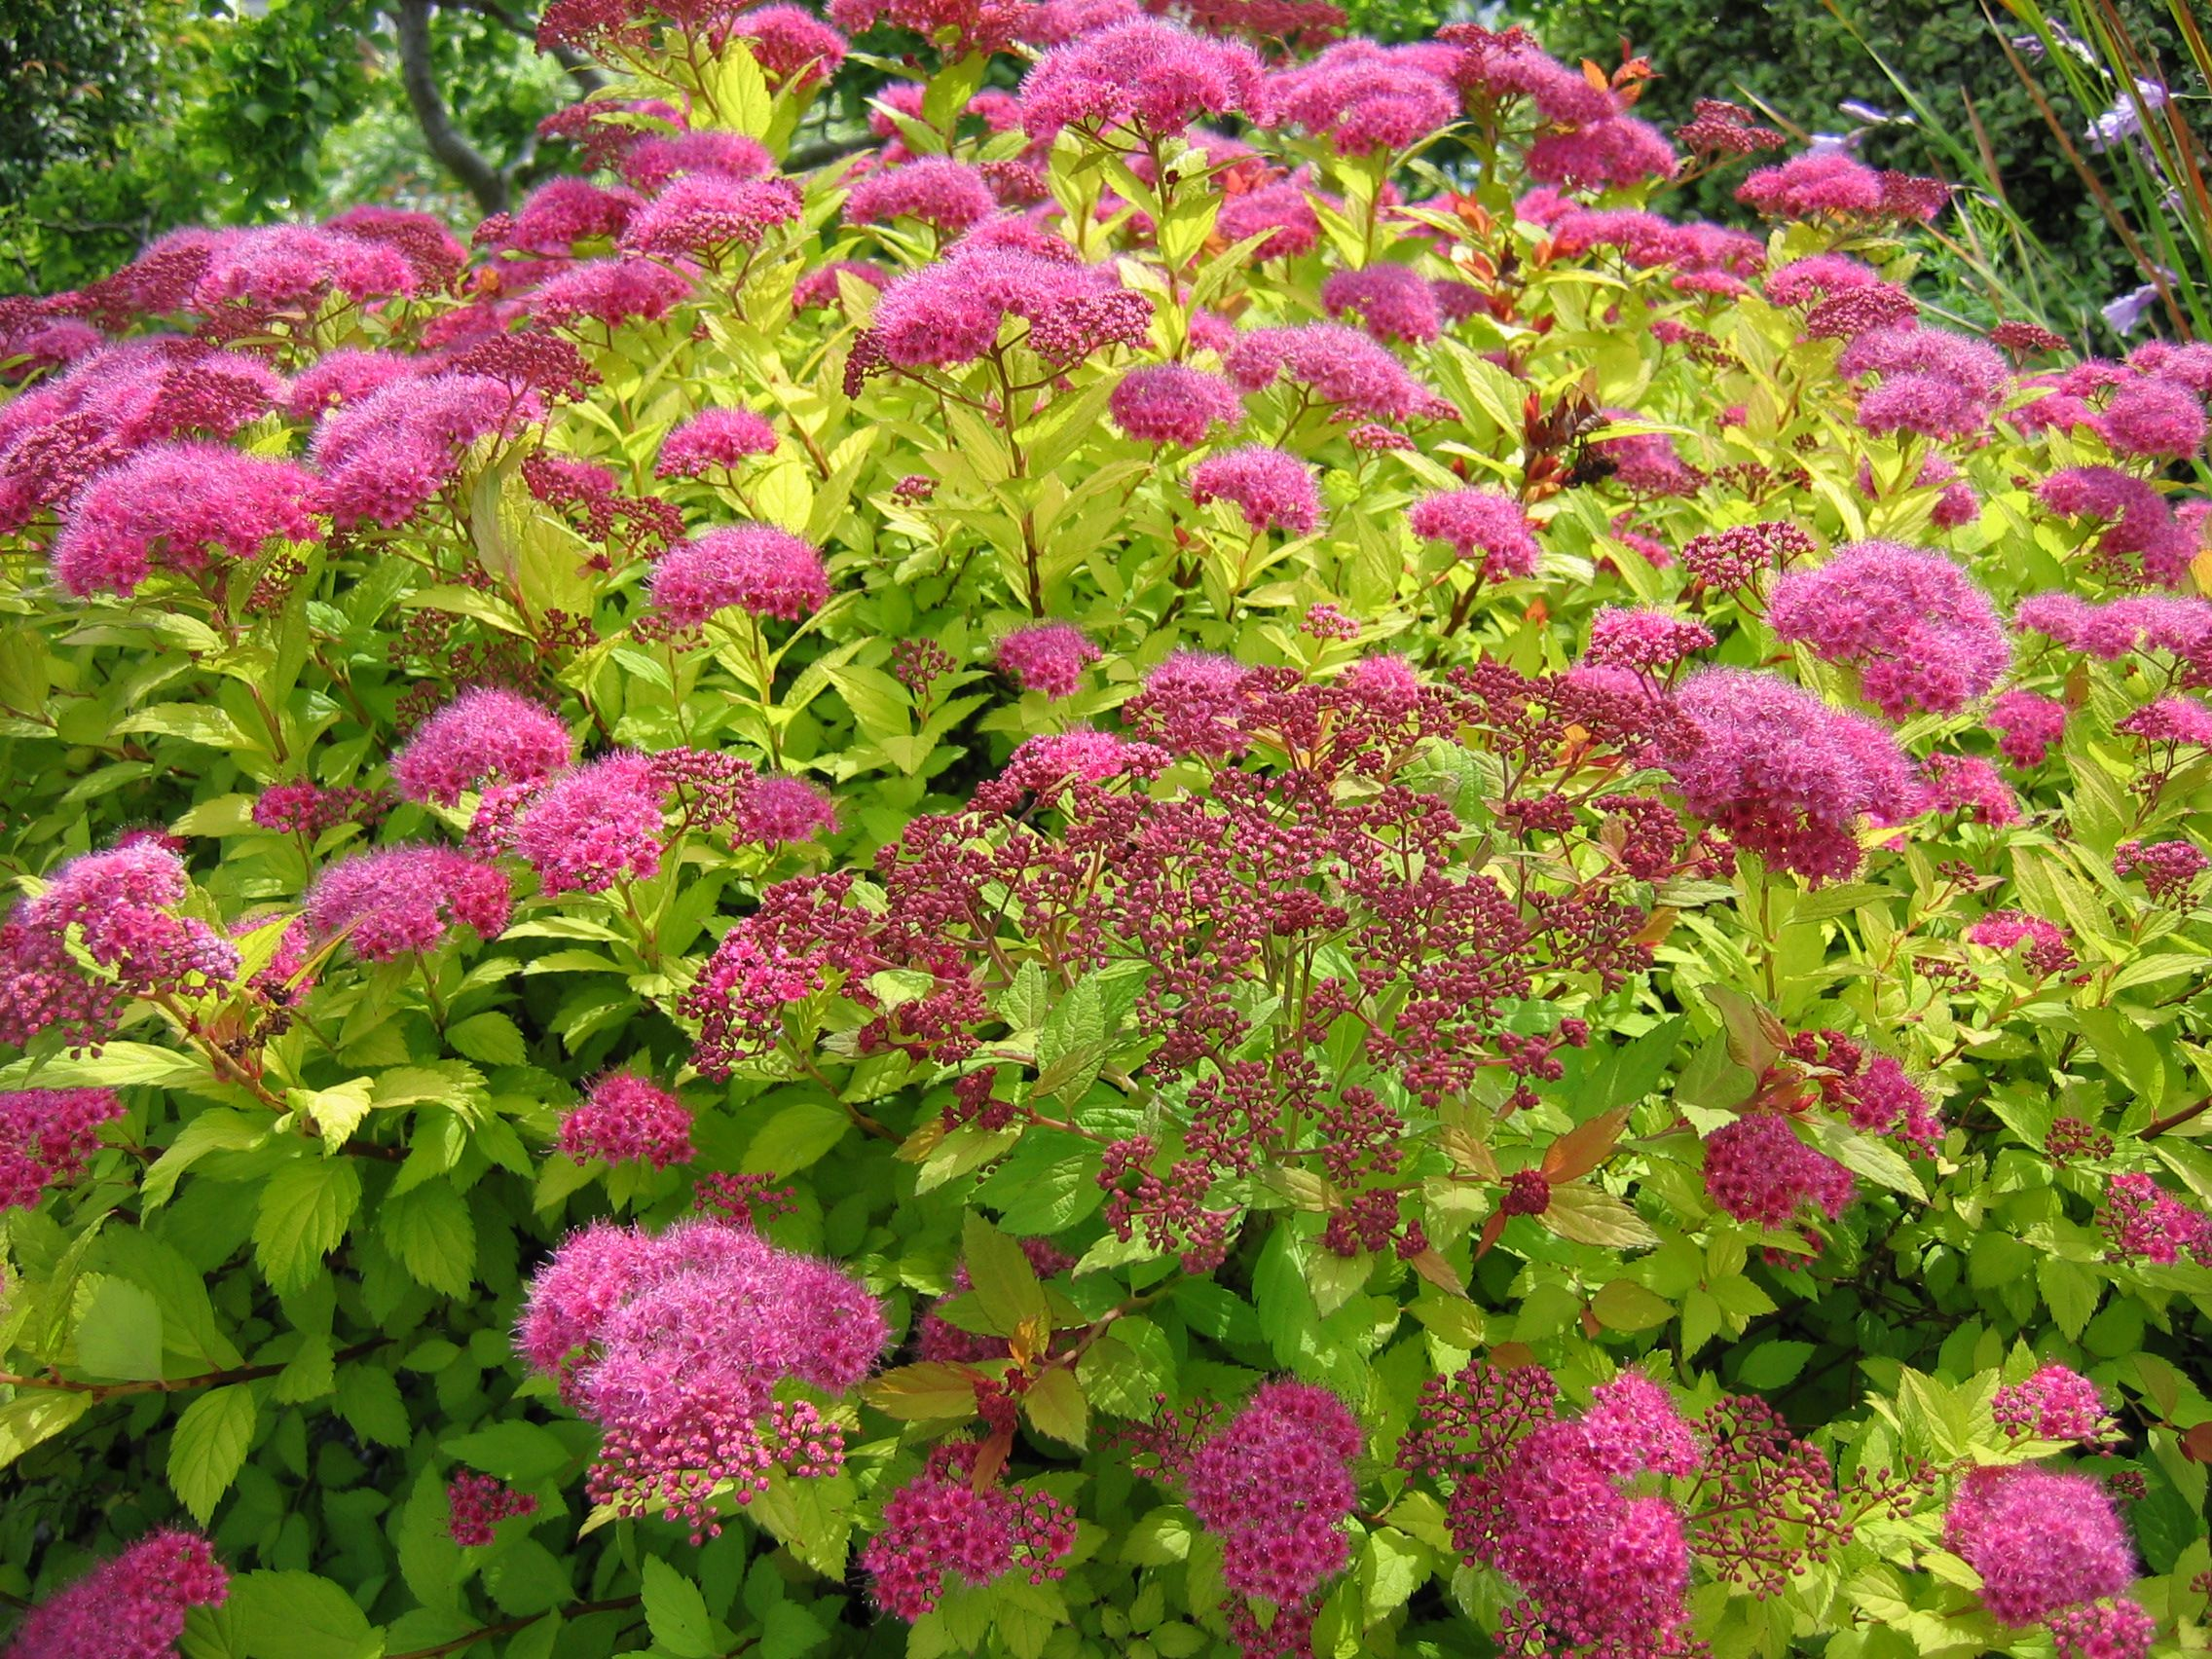 Spiraea Japonica Undemanding Shrub With Pink Flowers In Clusters In